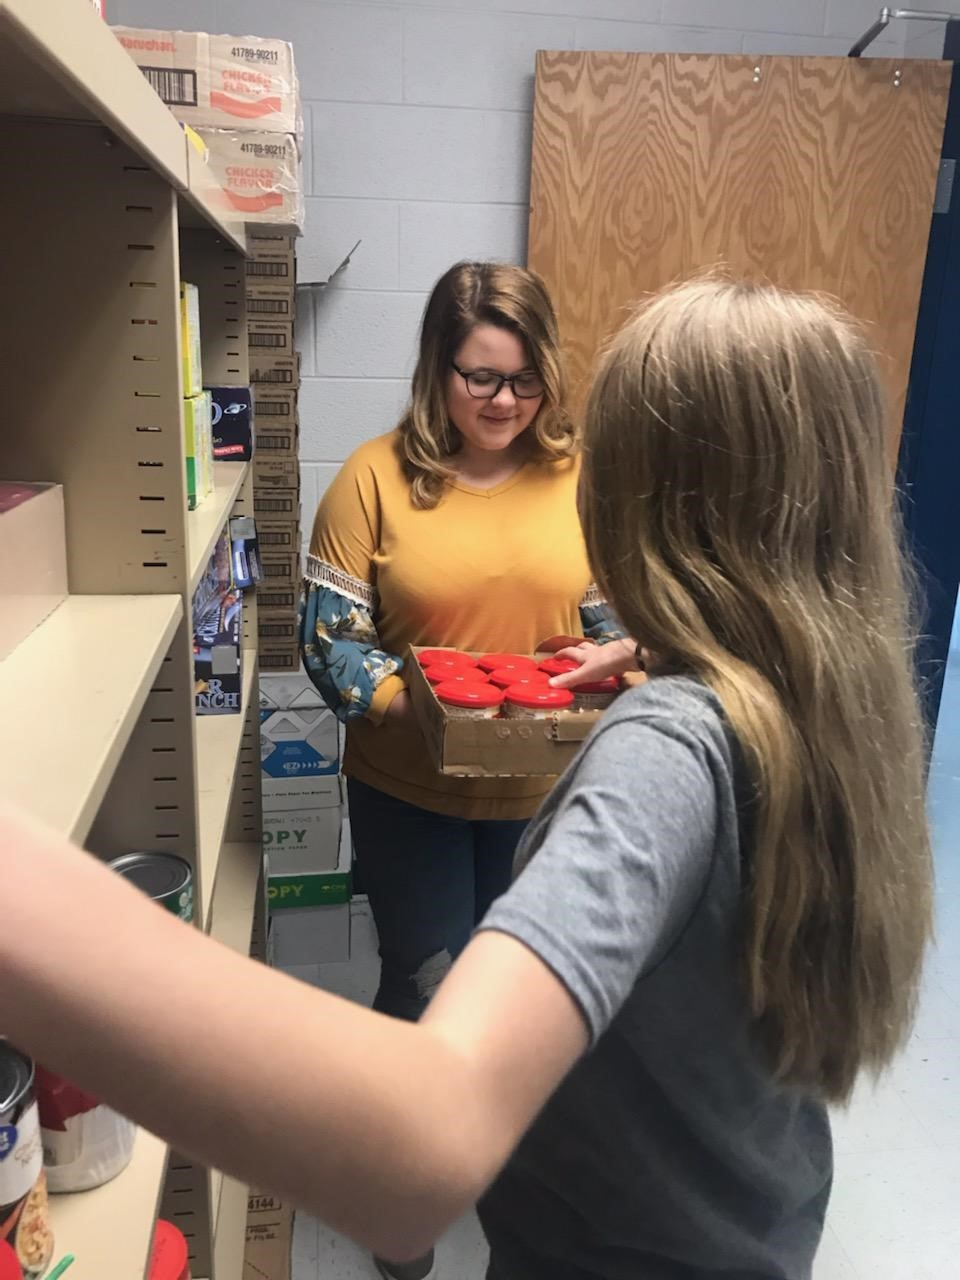 Students stocking school food pantry